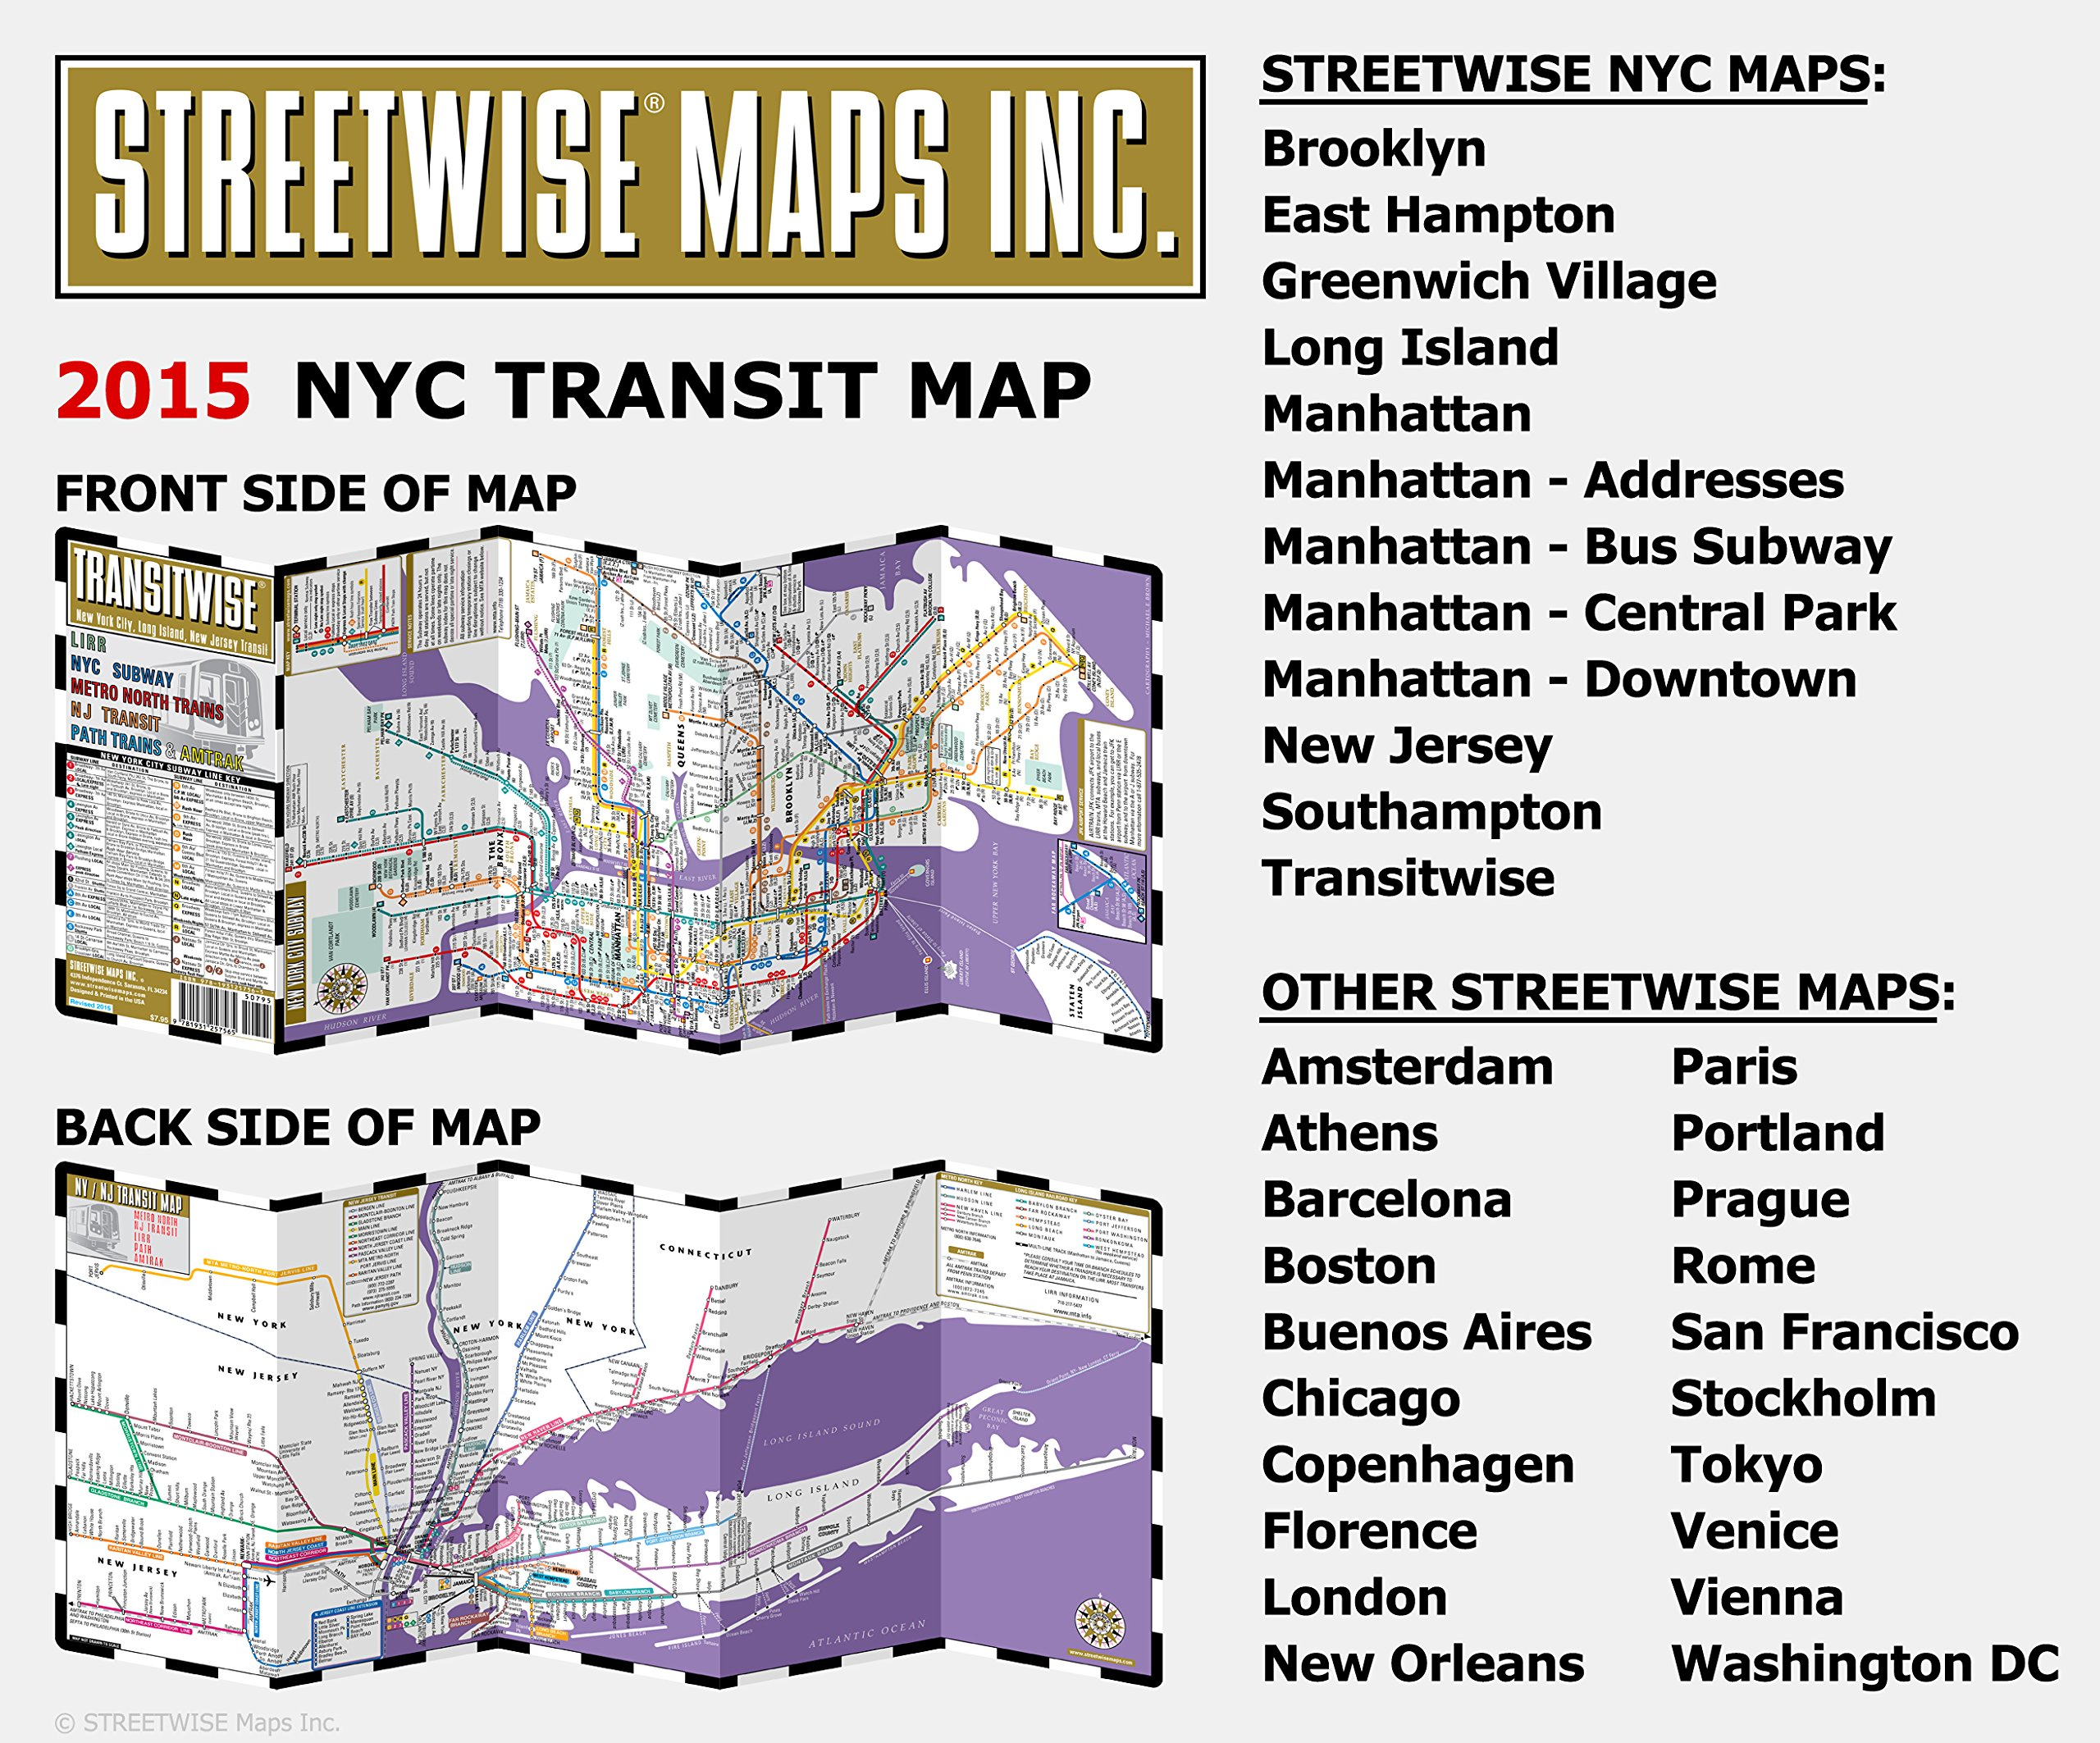 Streetwise Transitwise New York City Subway Map - Manhattan Subway